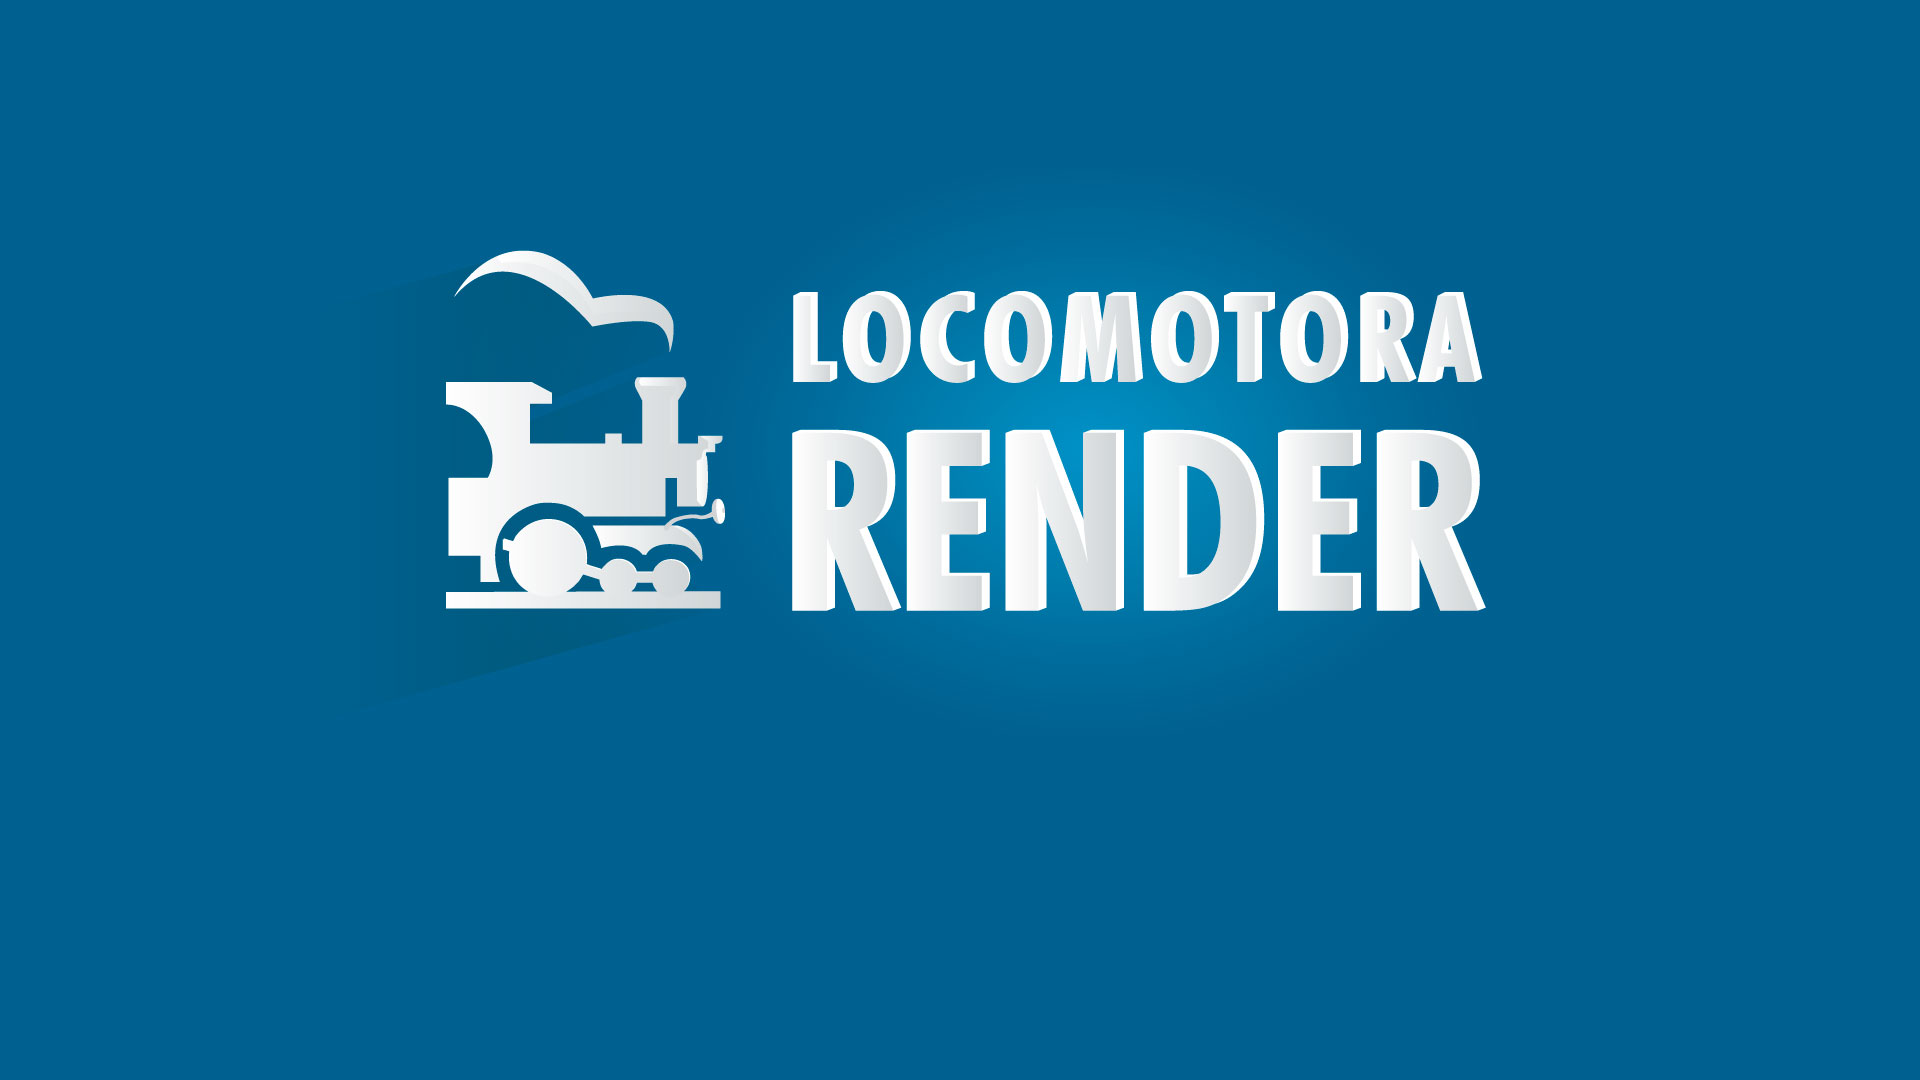 locomotora render background